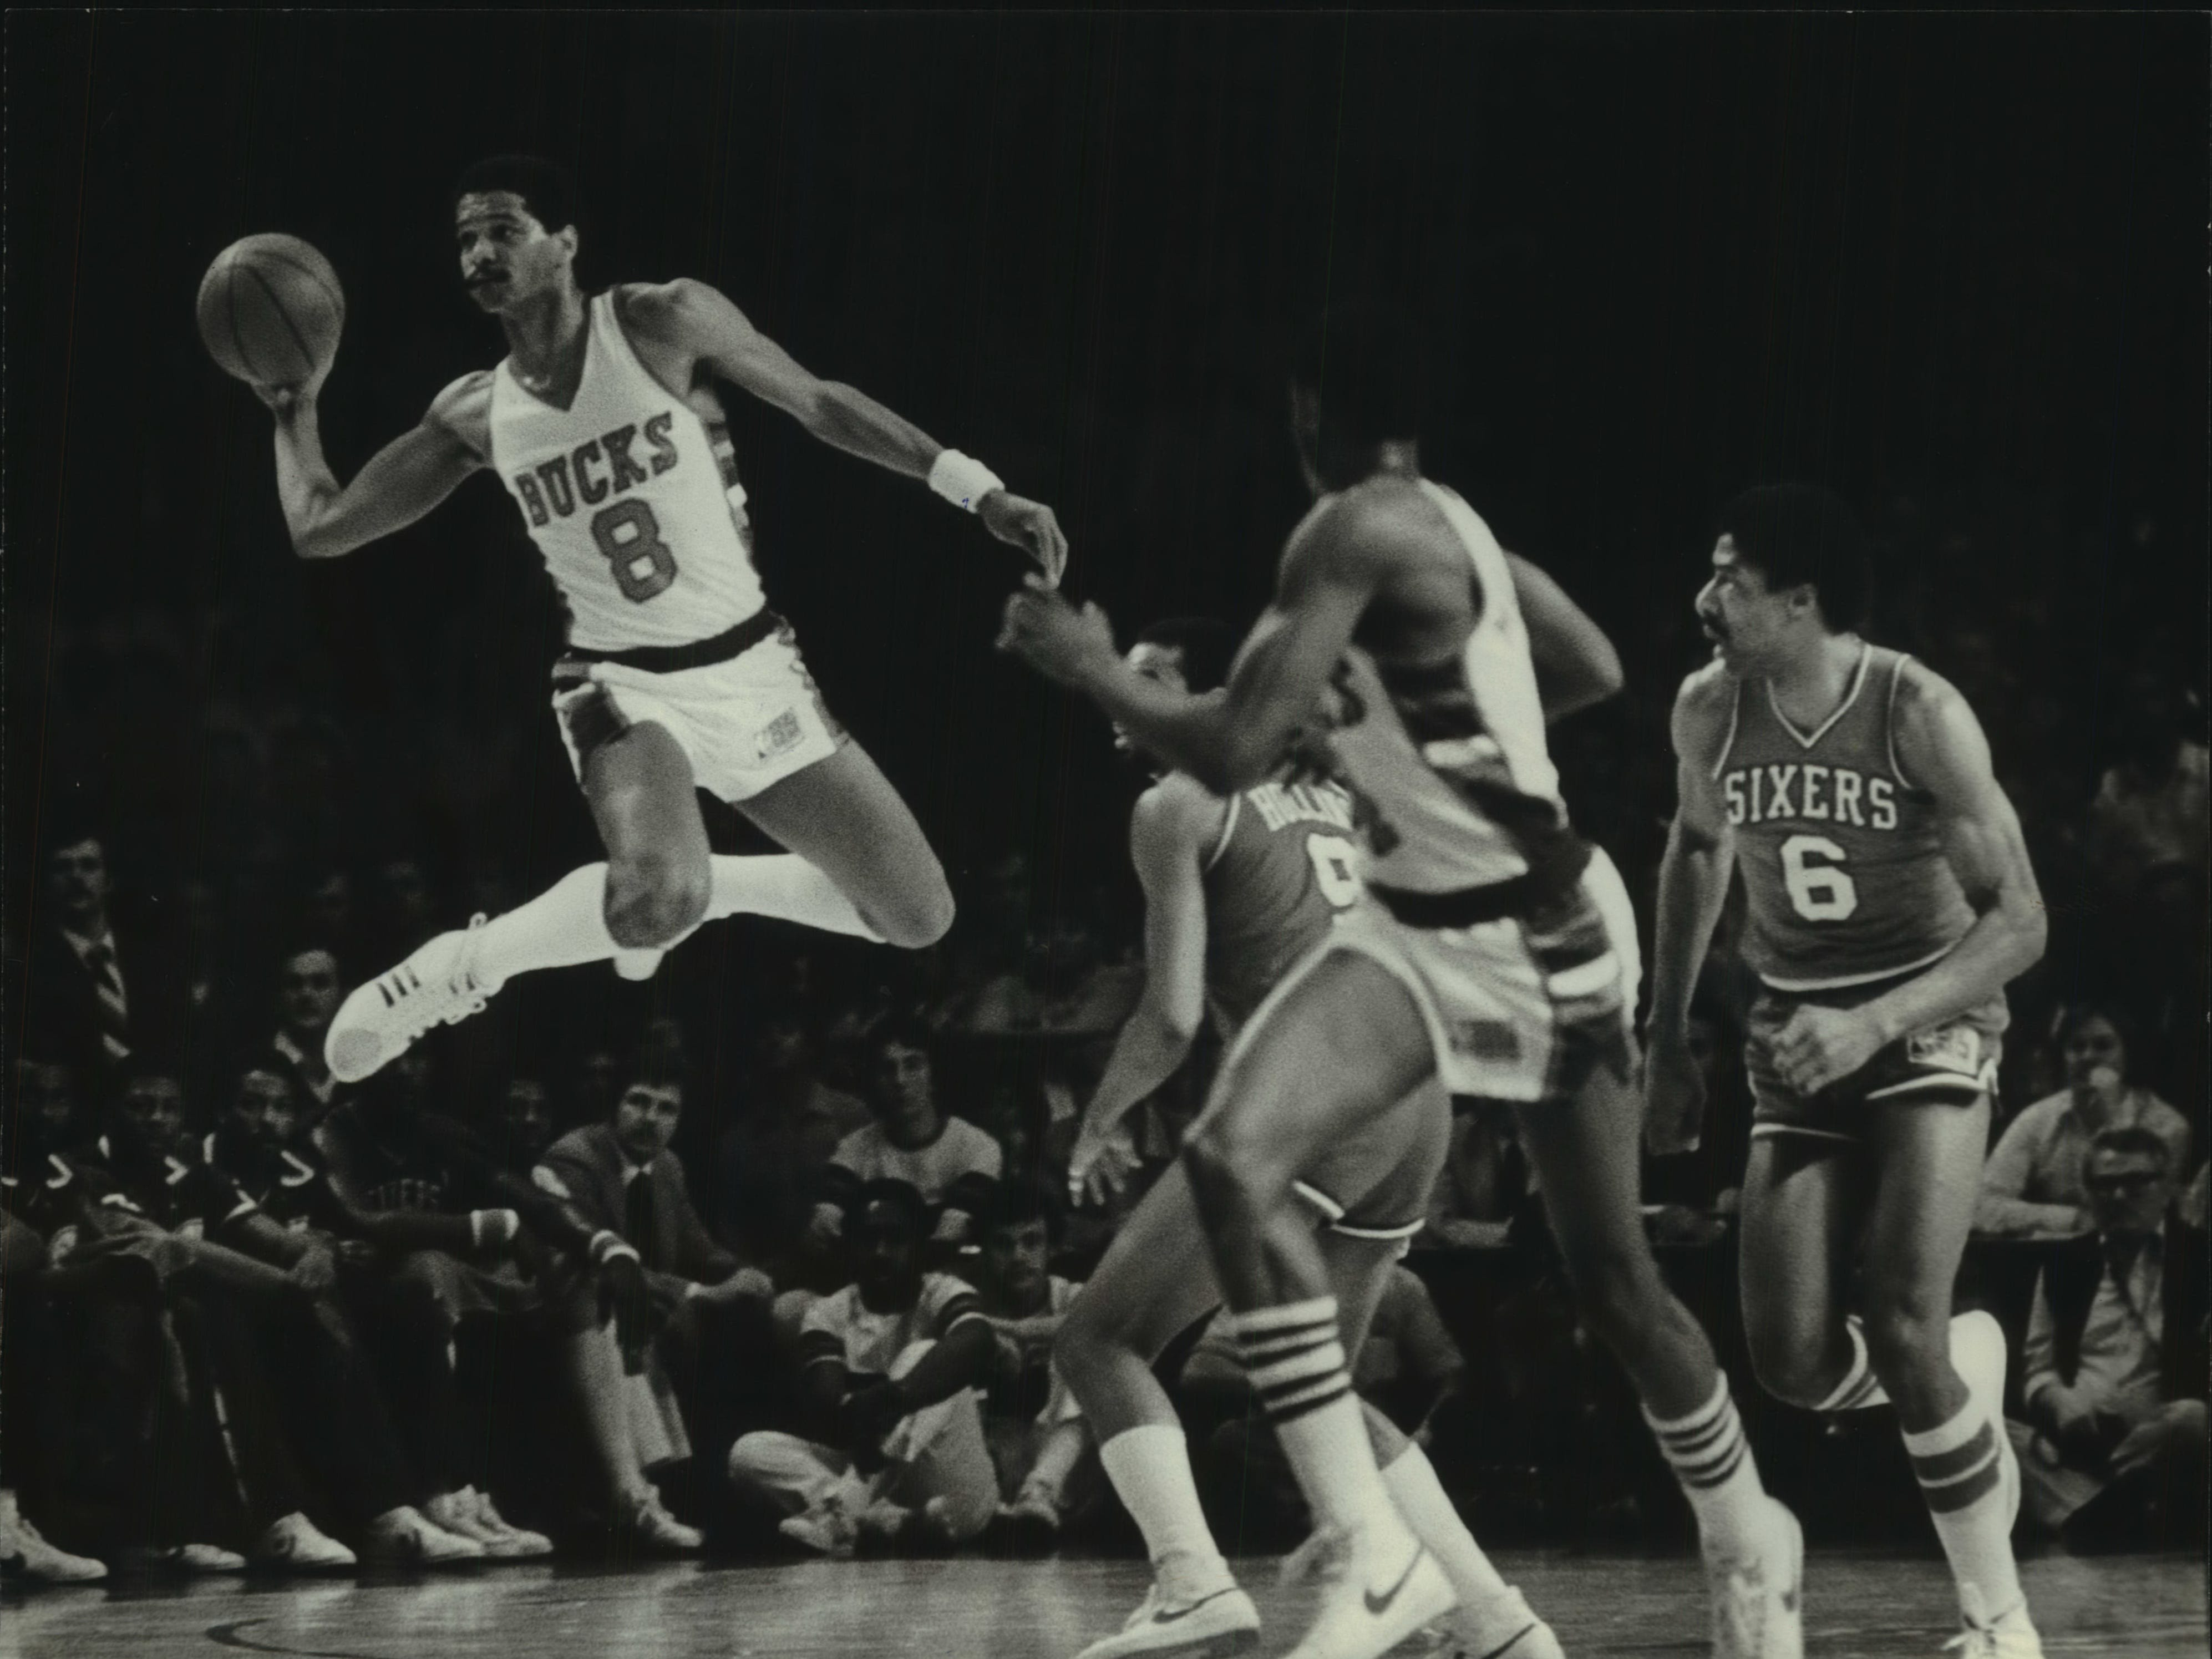 1981: After stealing the ball, Bucks star Marques Johnson fires a long pass to start a fast break against the Philadelphia 76ers during the sixth game of the Eastern Conference semifinals at the Milwaukee Arena on April 17, 1981. That's 76ers star Julius Erving at the far right. The Bucks beat the 76ers 109-86, but lost the series. This photo was published in the April 18, 1981, Milwaukee Sentinel.